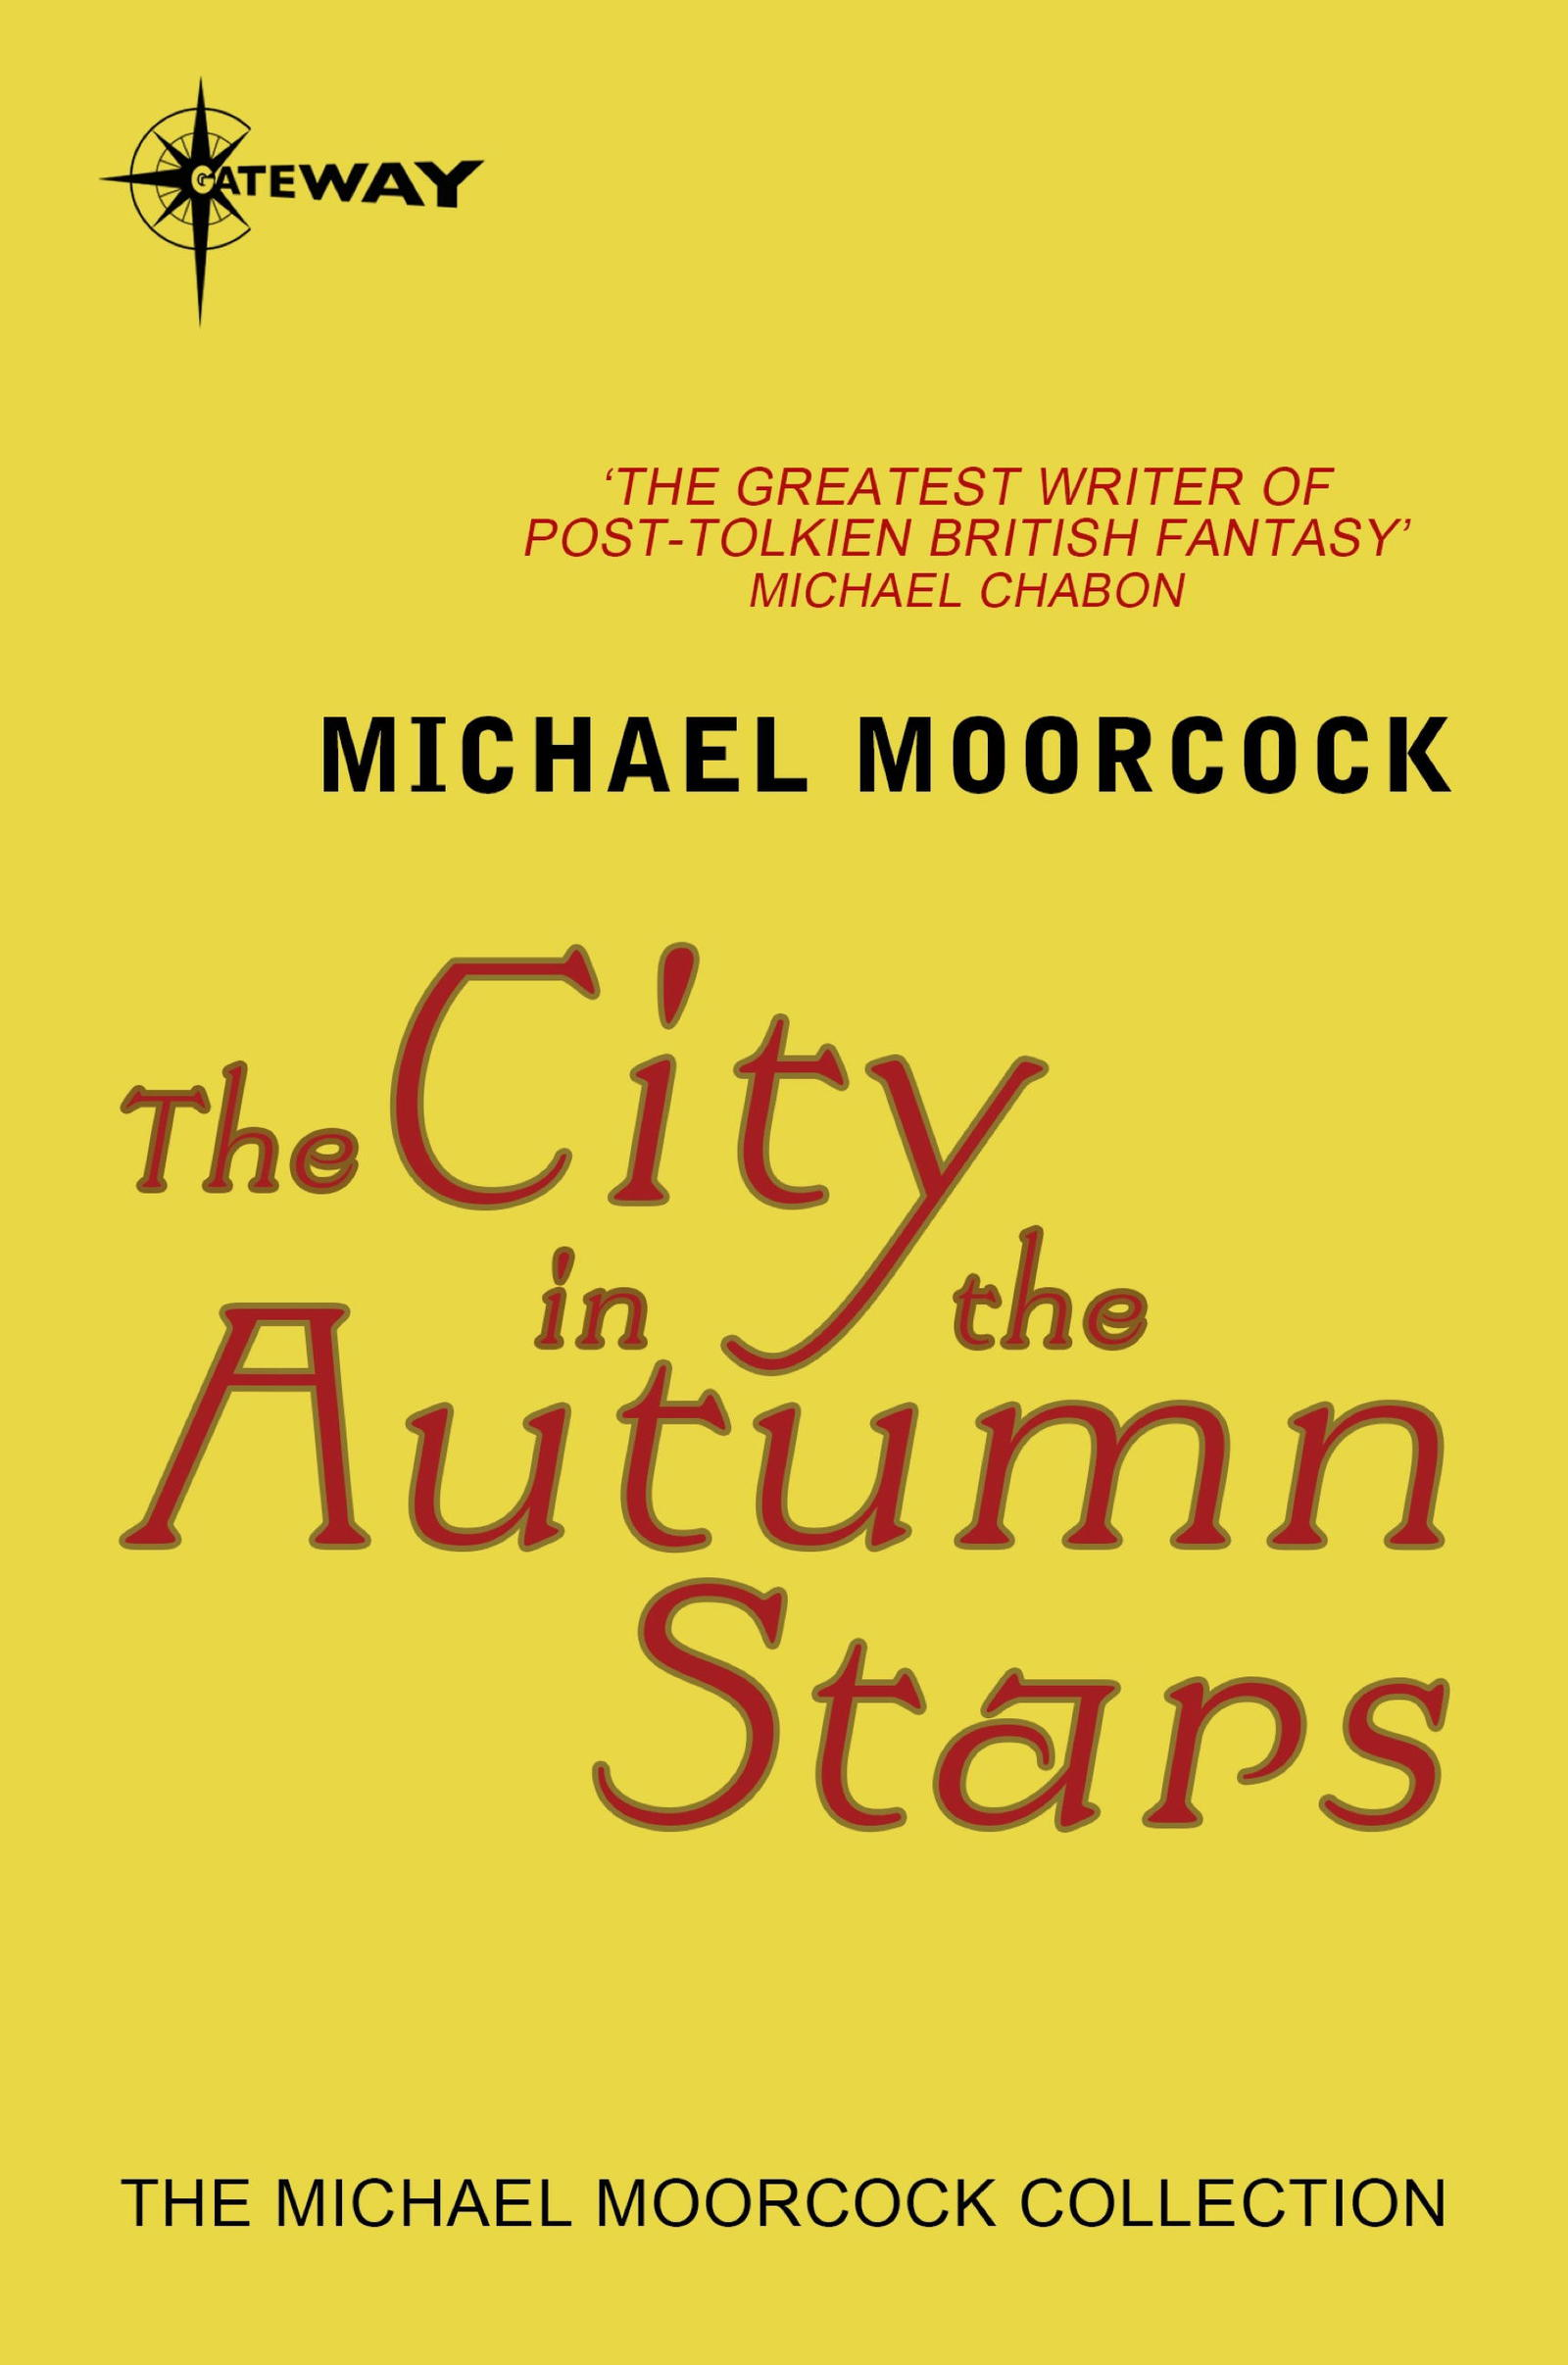 The City in the Autumn Stars